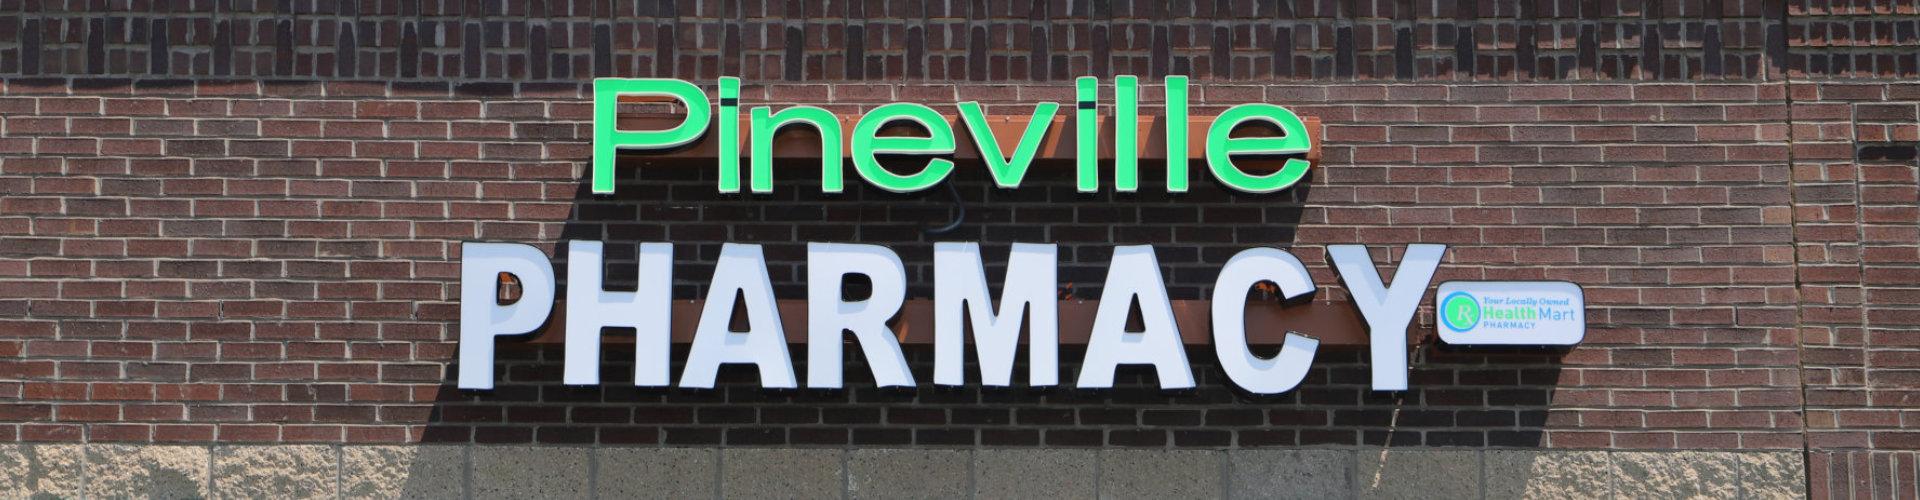 Pineville Pharmacy